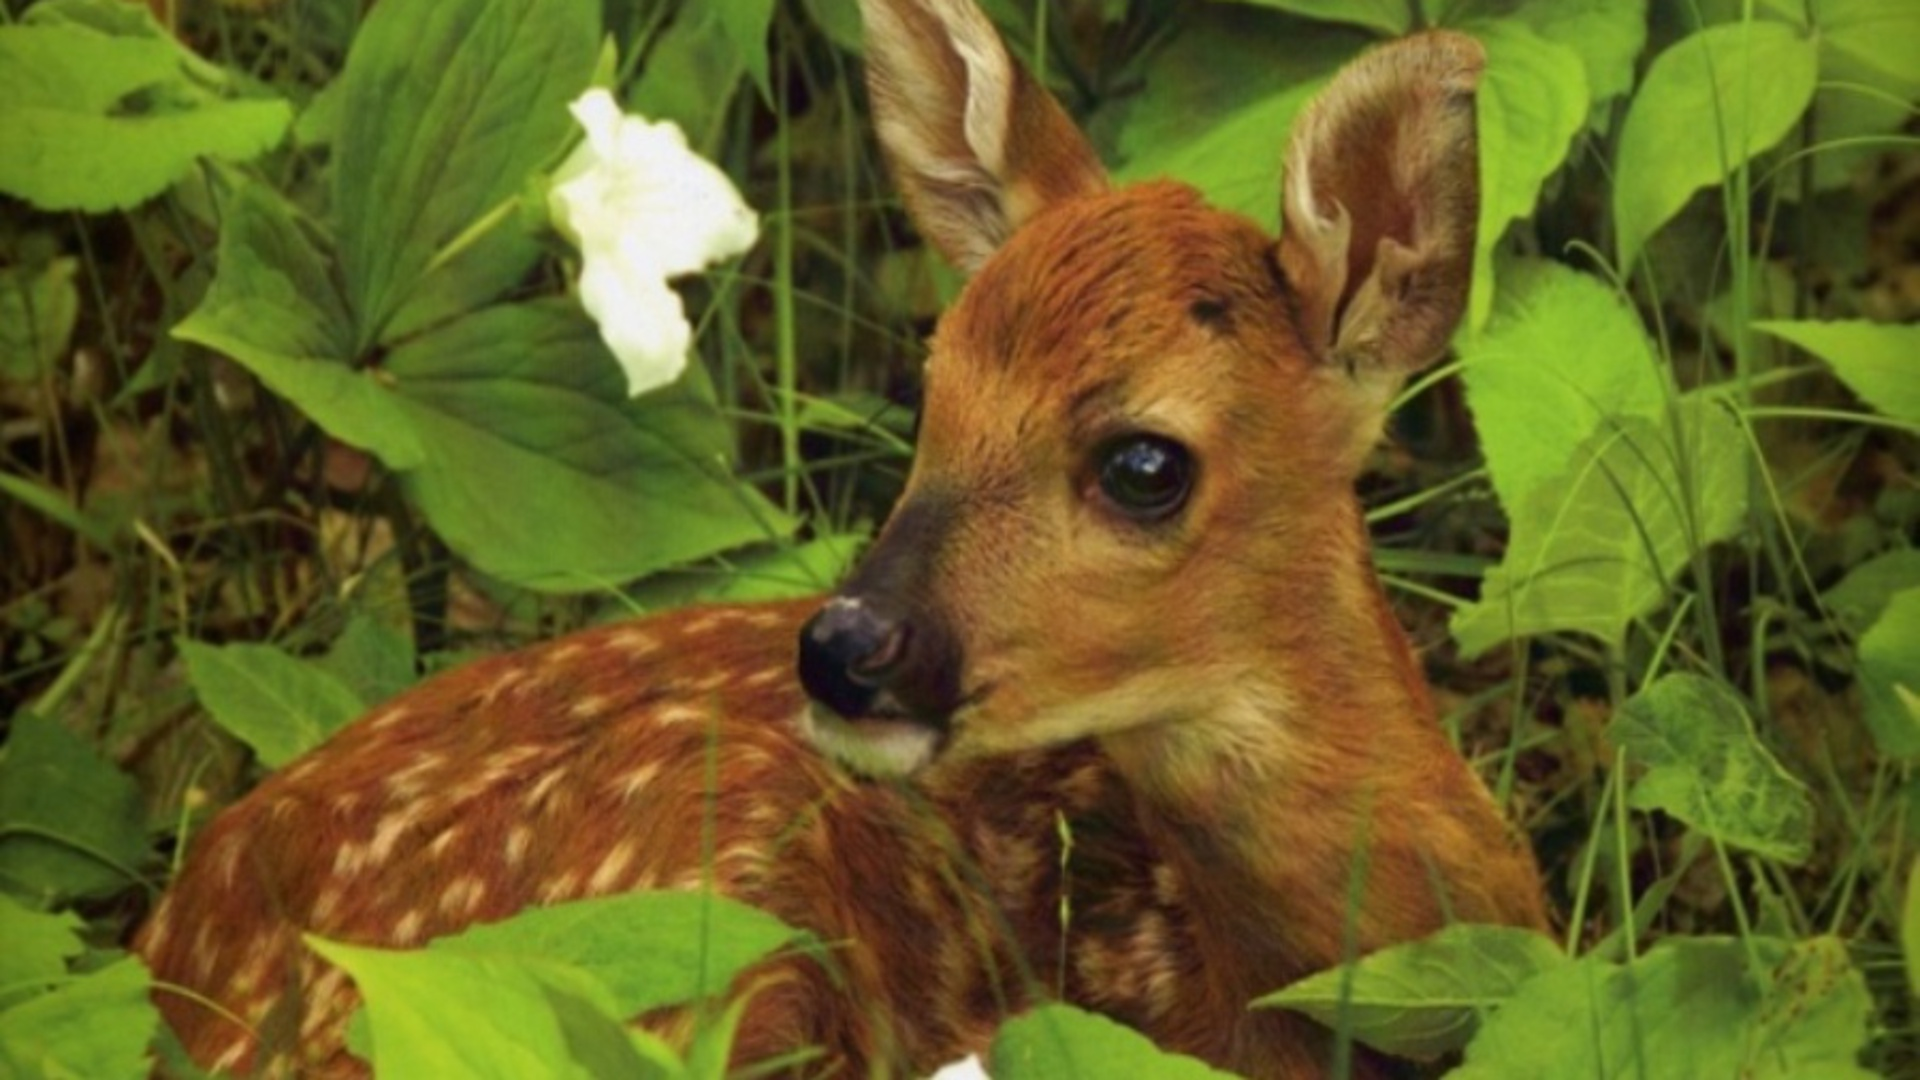 Deer Nature Animals Fawns Baby Animals Wallpapers Hd: How To Go Green In The City With DIY Urban Composting